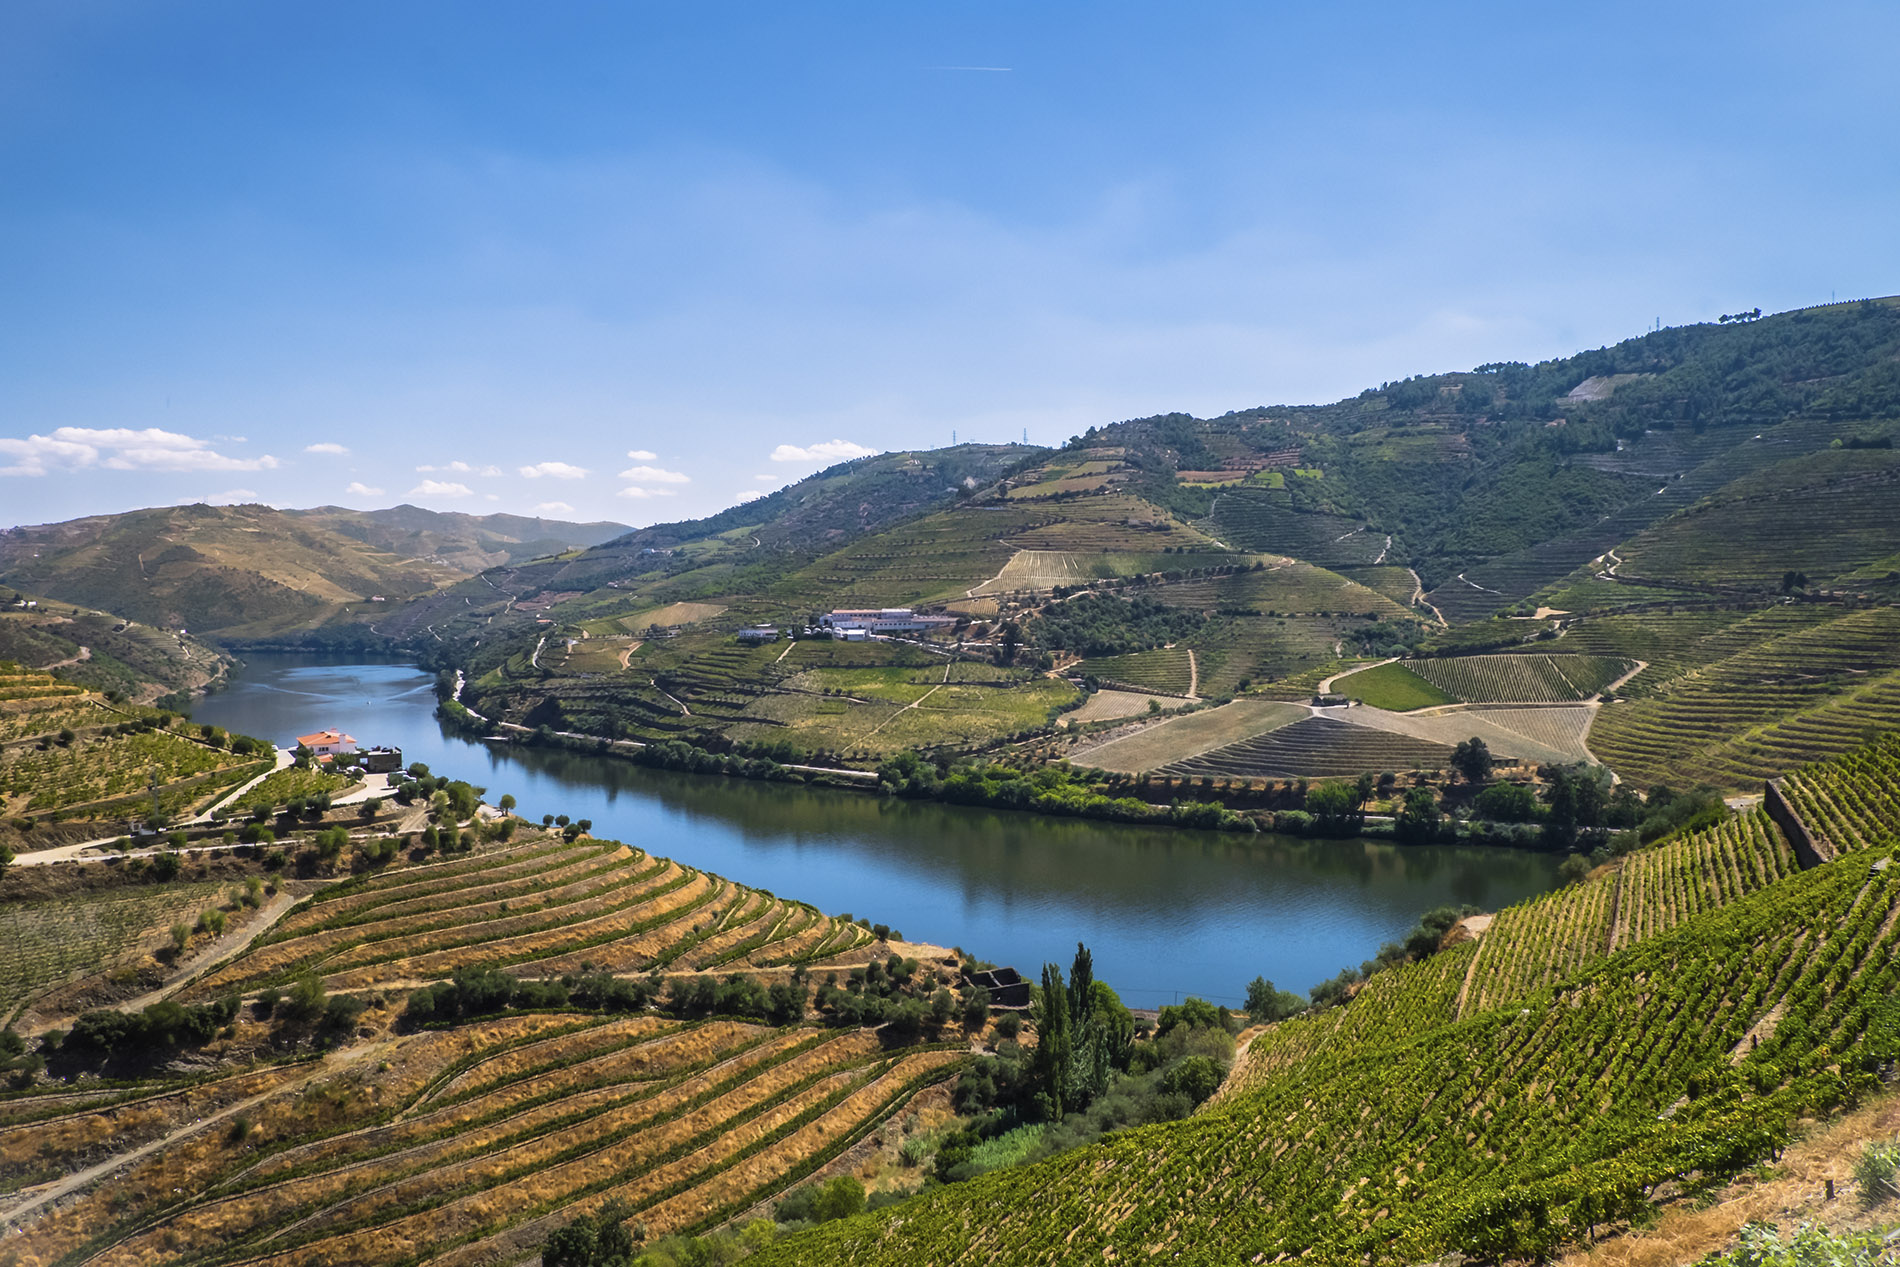 a large body of water with Douro in the background